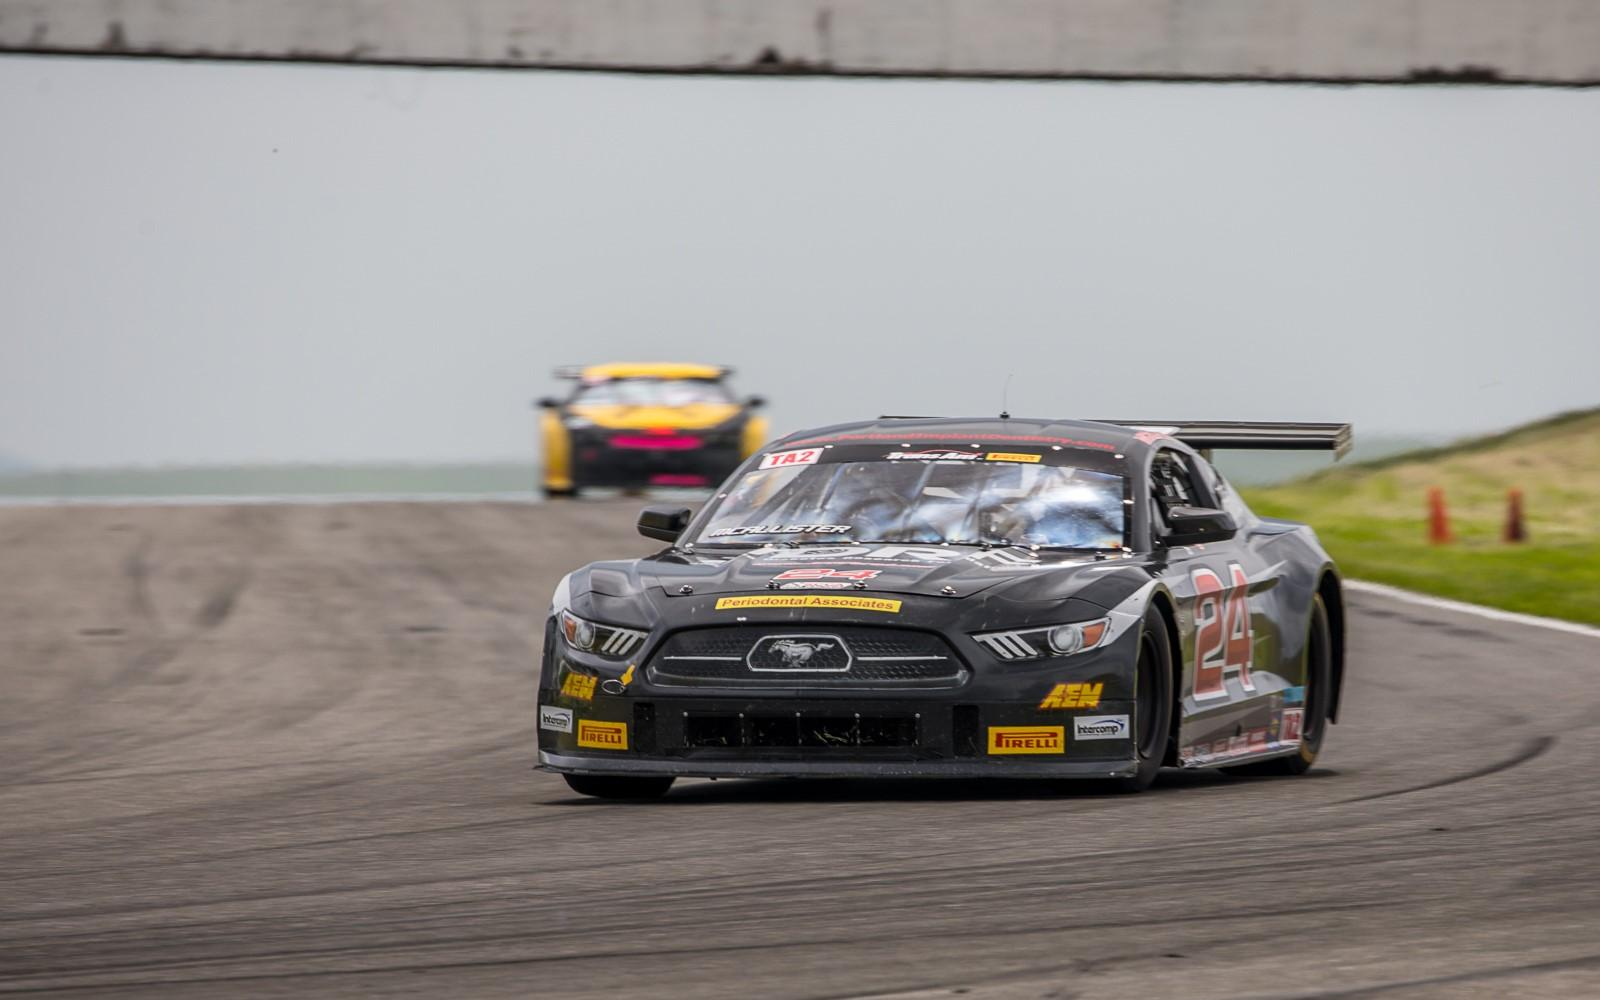 Trans Am West Coast Championship Returns to Auto Club Speedway for Second Event